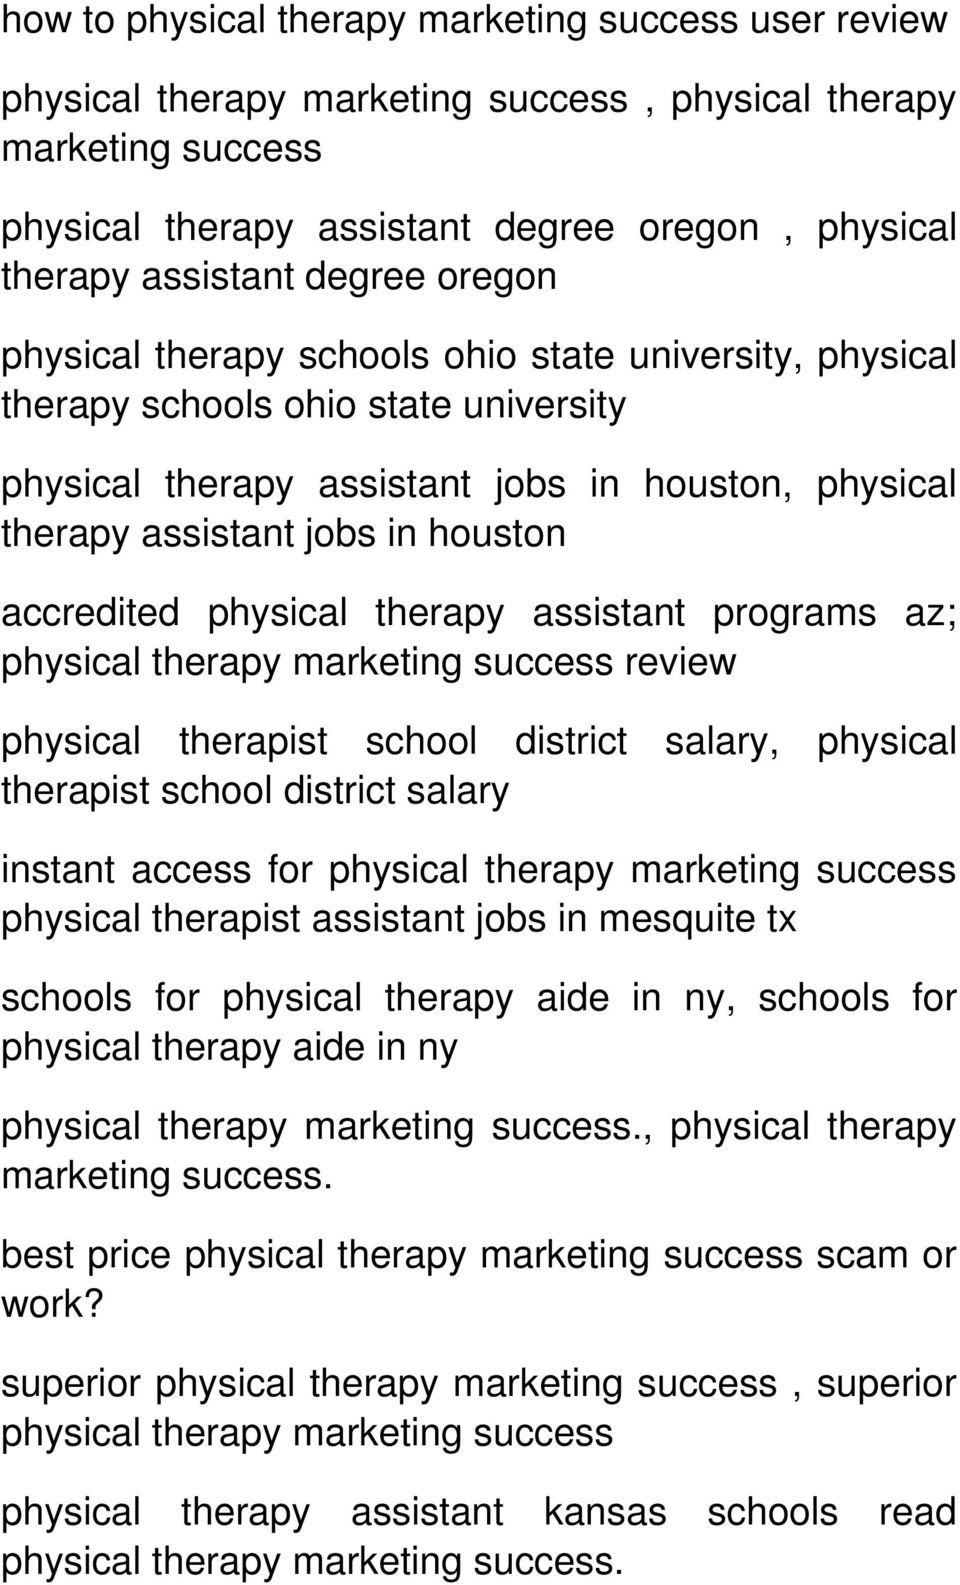 physical therapy review physical therapist school district salary, physical therapist school district salary instant access for physical therapy physical therapist assistant jobs in mesquite tx